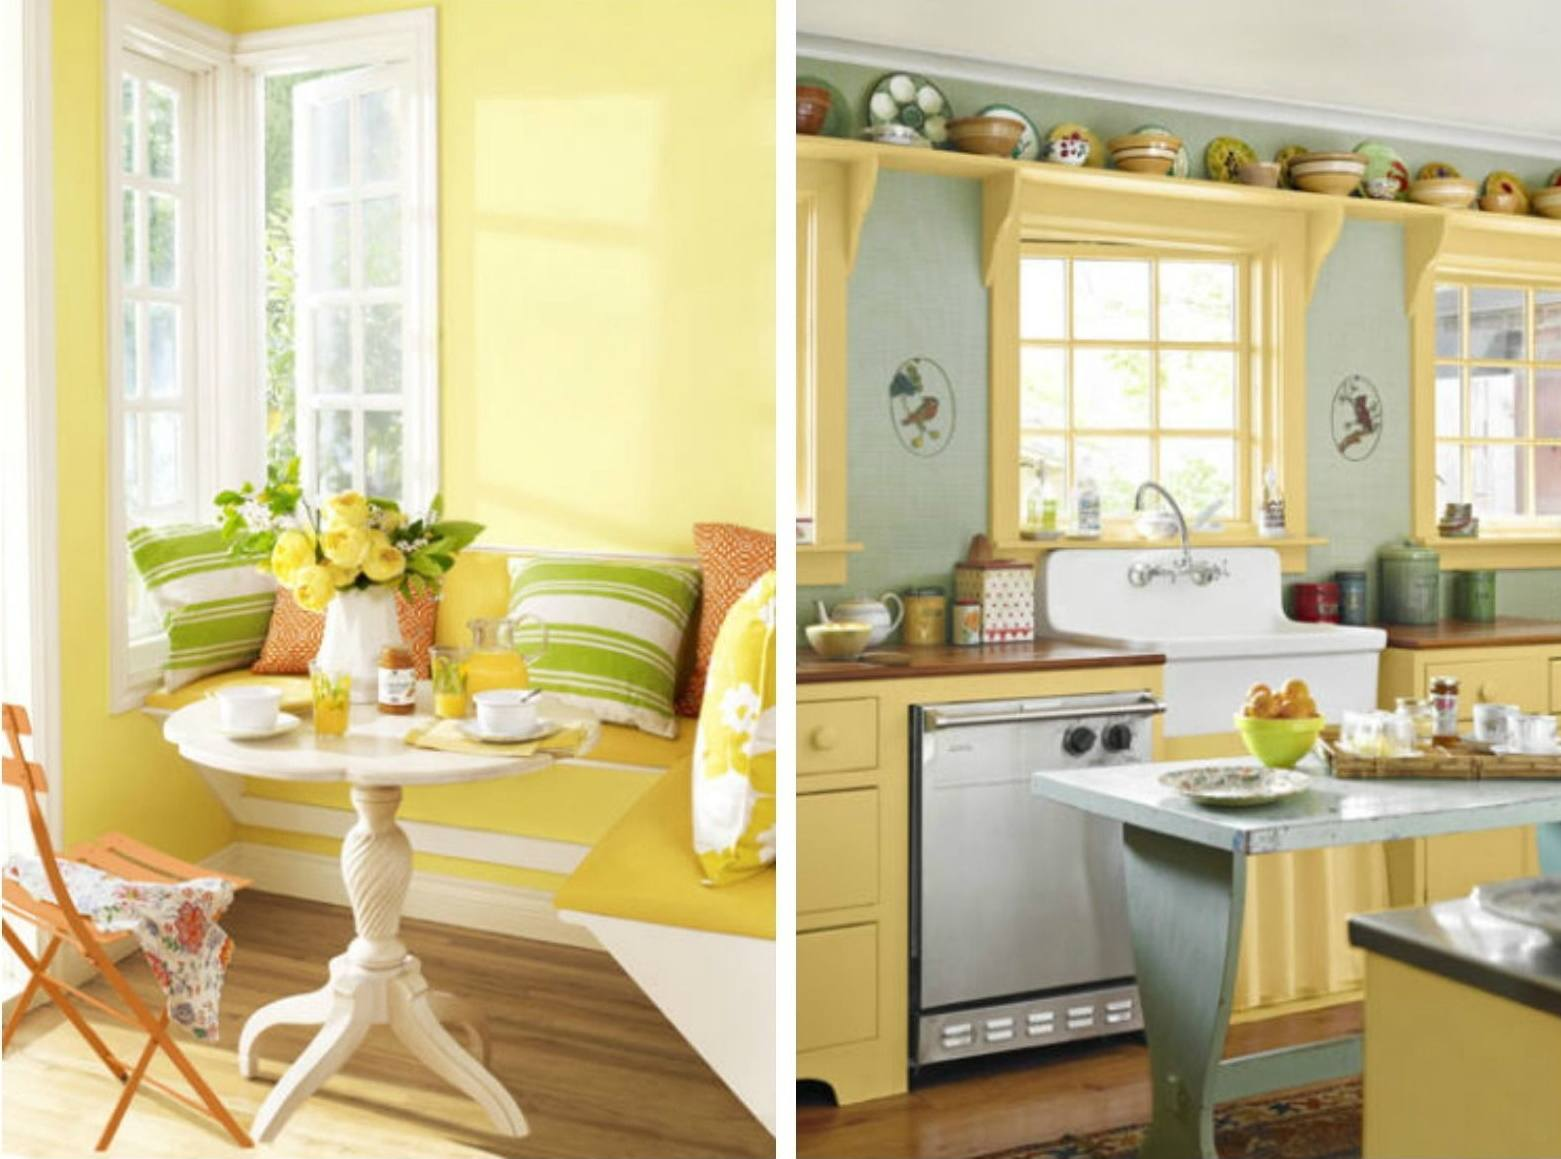 The retro pop kitchen yellow